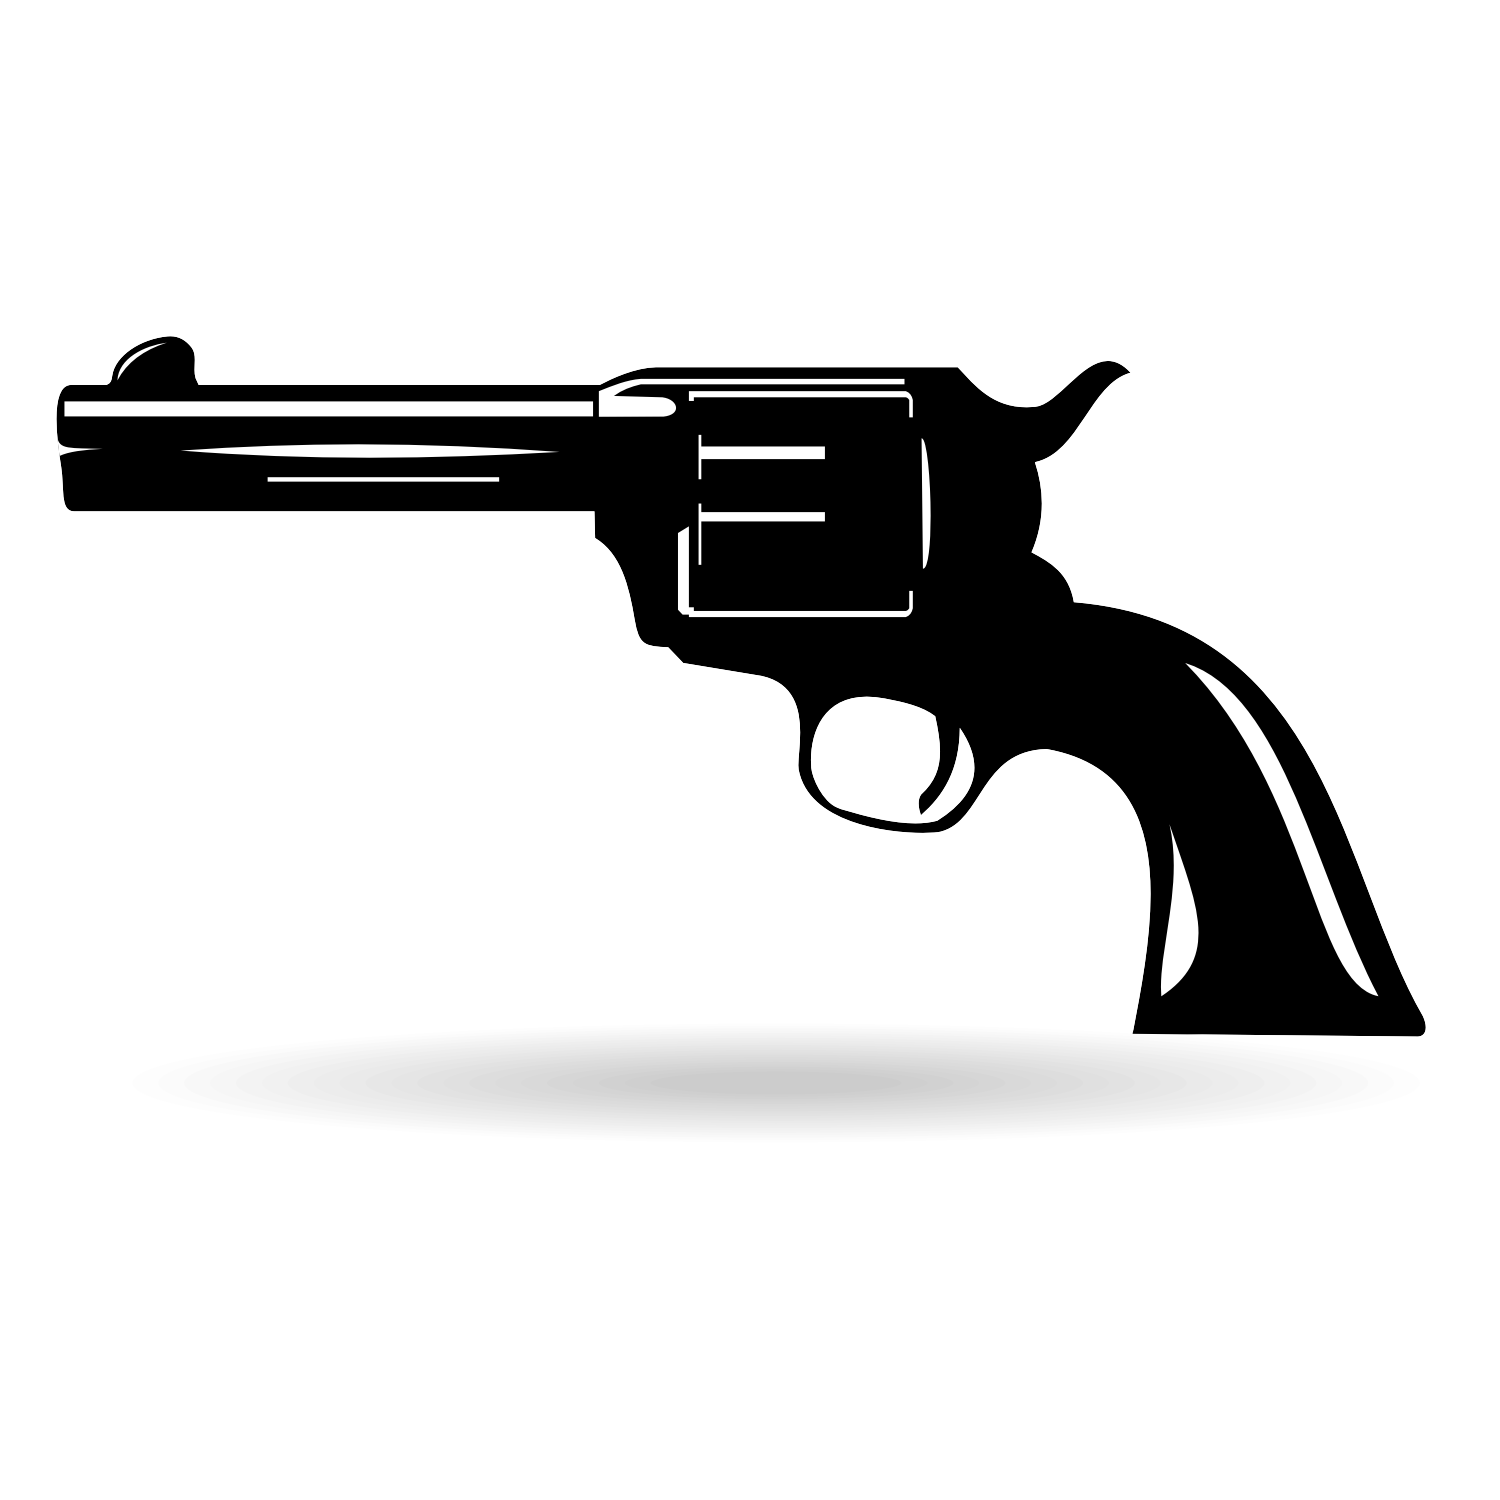 15 Old West Gun Silhouette Vector Images